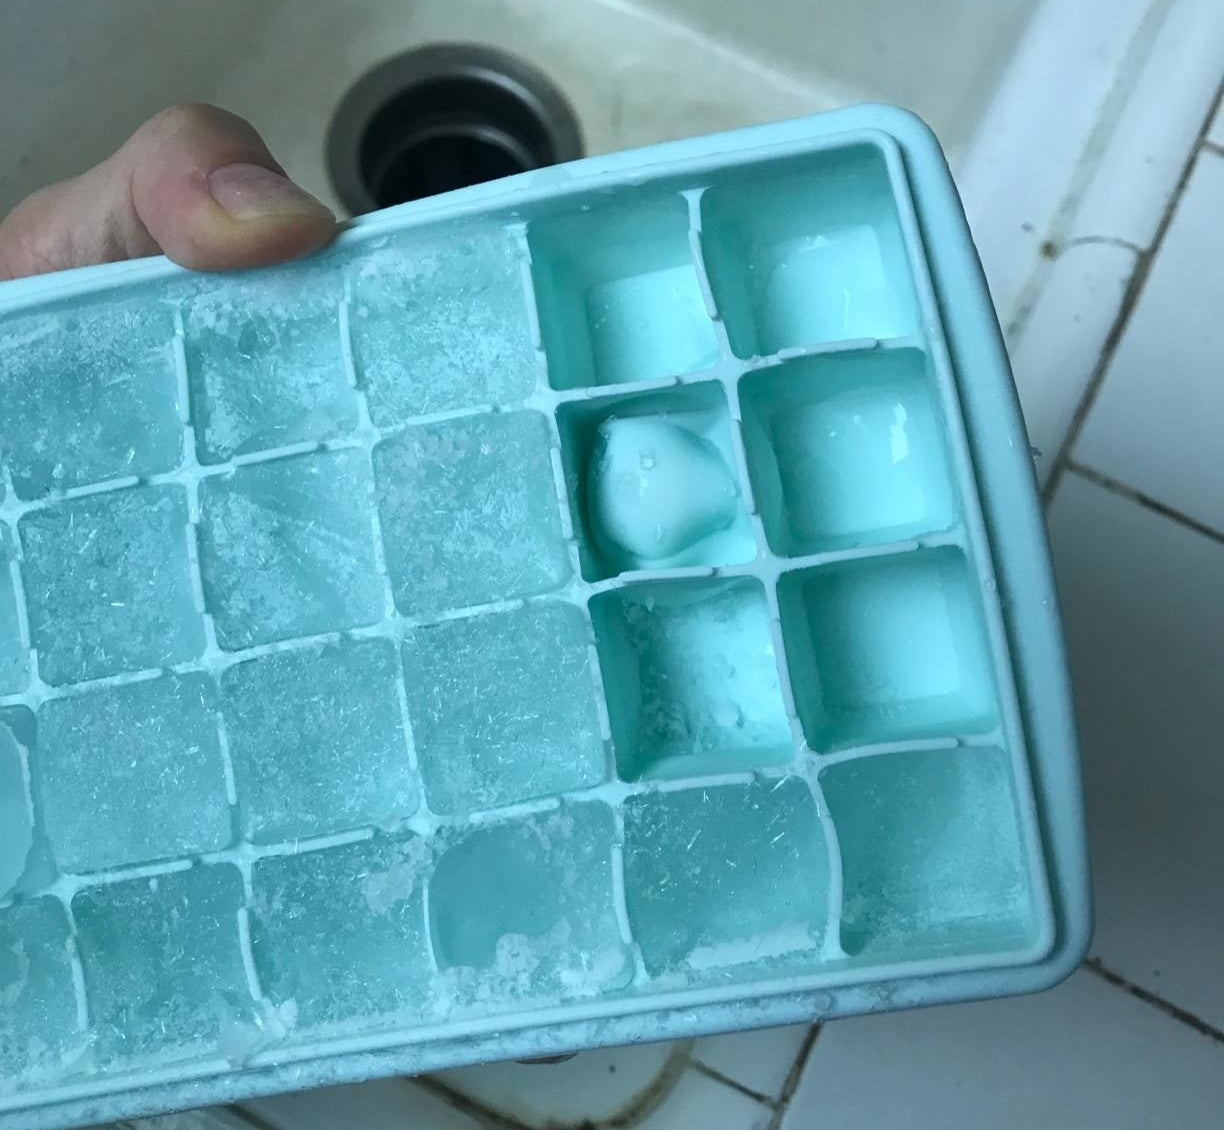 A reviewer's ice tray